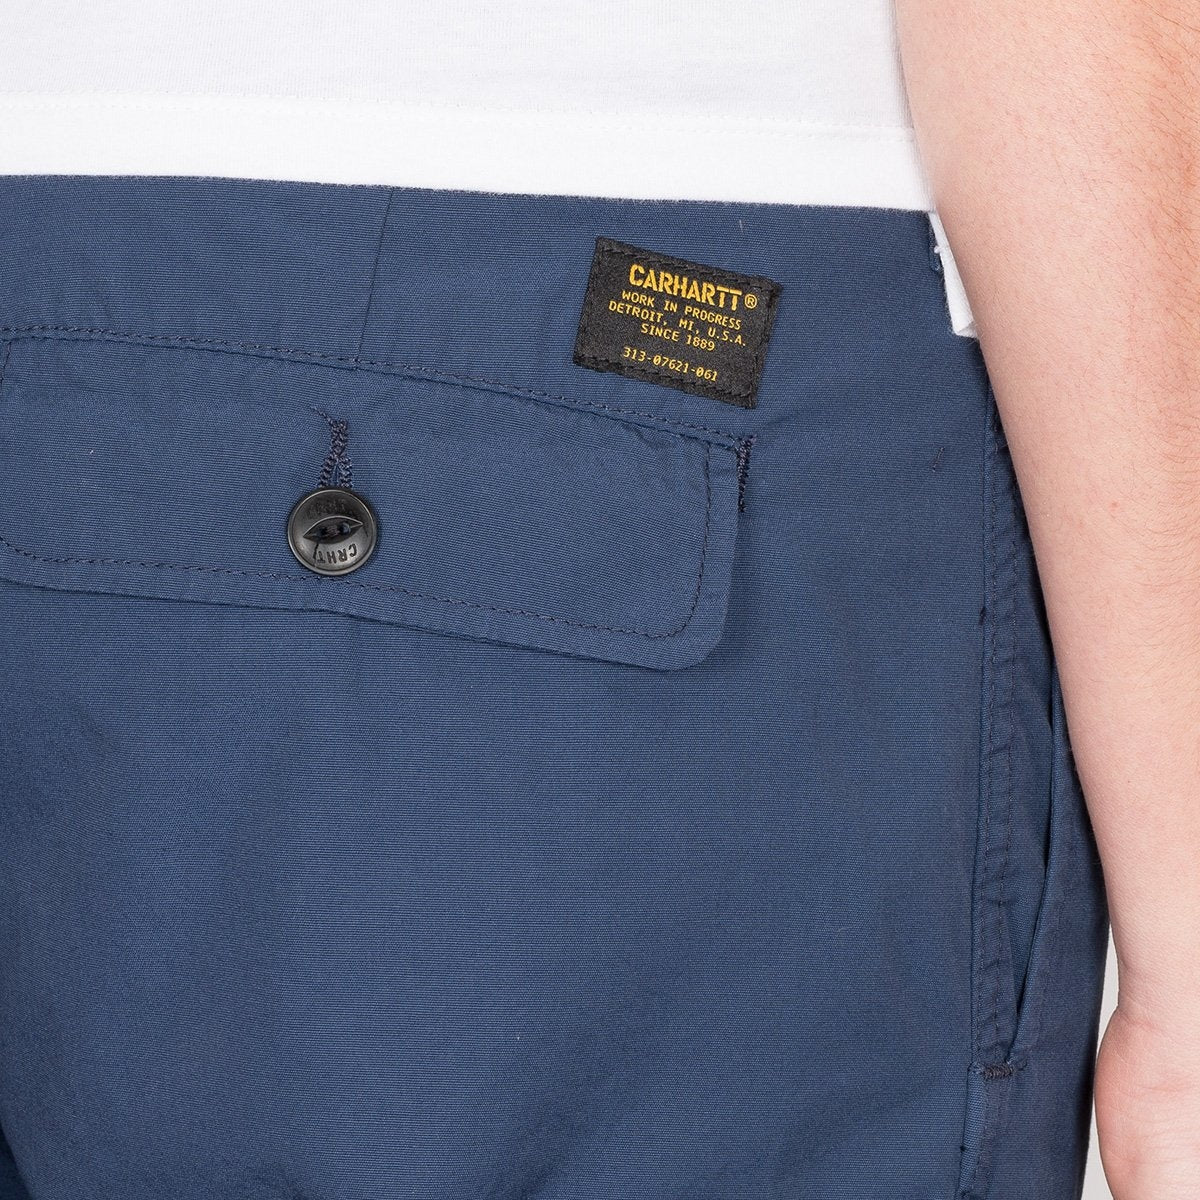 Carhartt WIP Shelter Cargo Shorts Blue Rinsed - Clothing